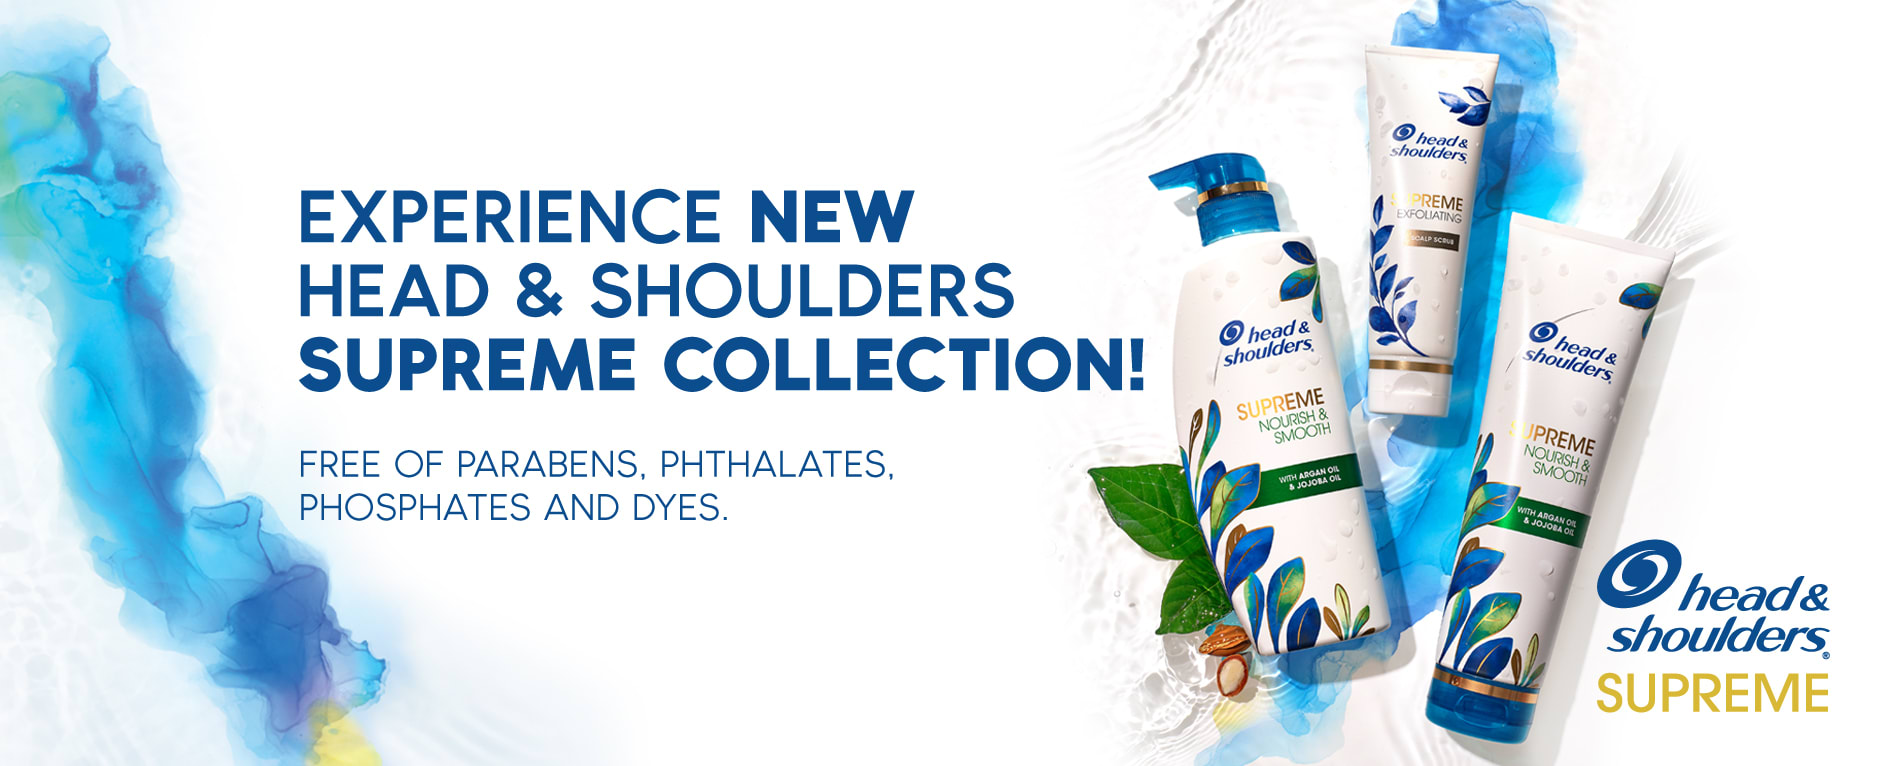 Experience new Head & Shoulders Supreme Collection! Free of Parabens, Phthalates, Phosphates and Dyes.